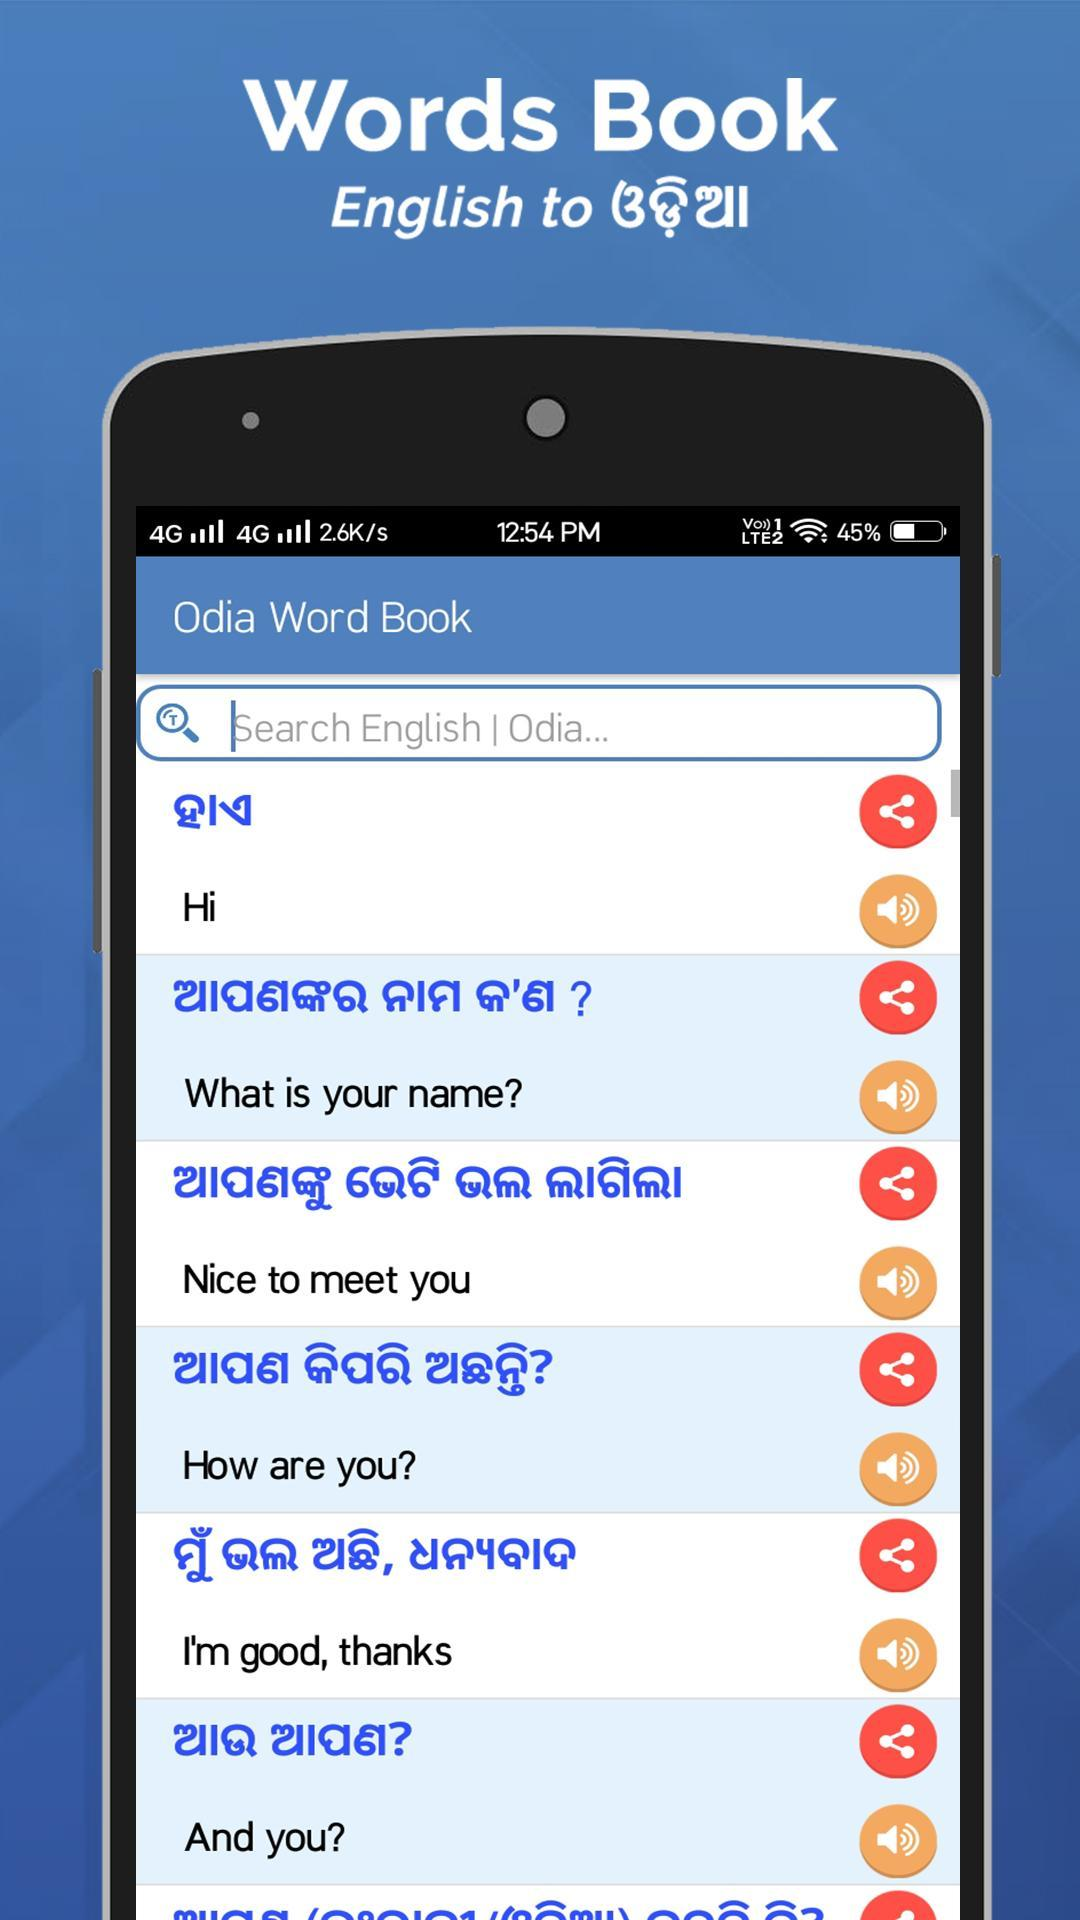 Word Book English To Odia for Android - APK Download